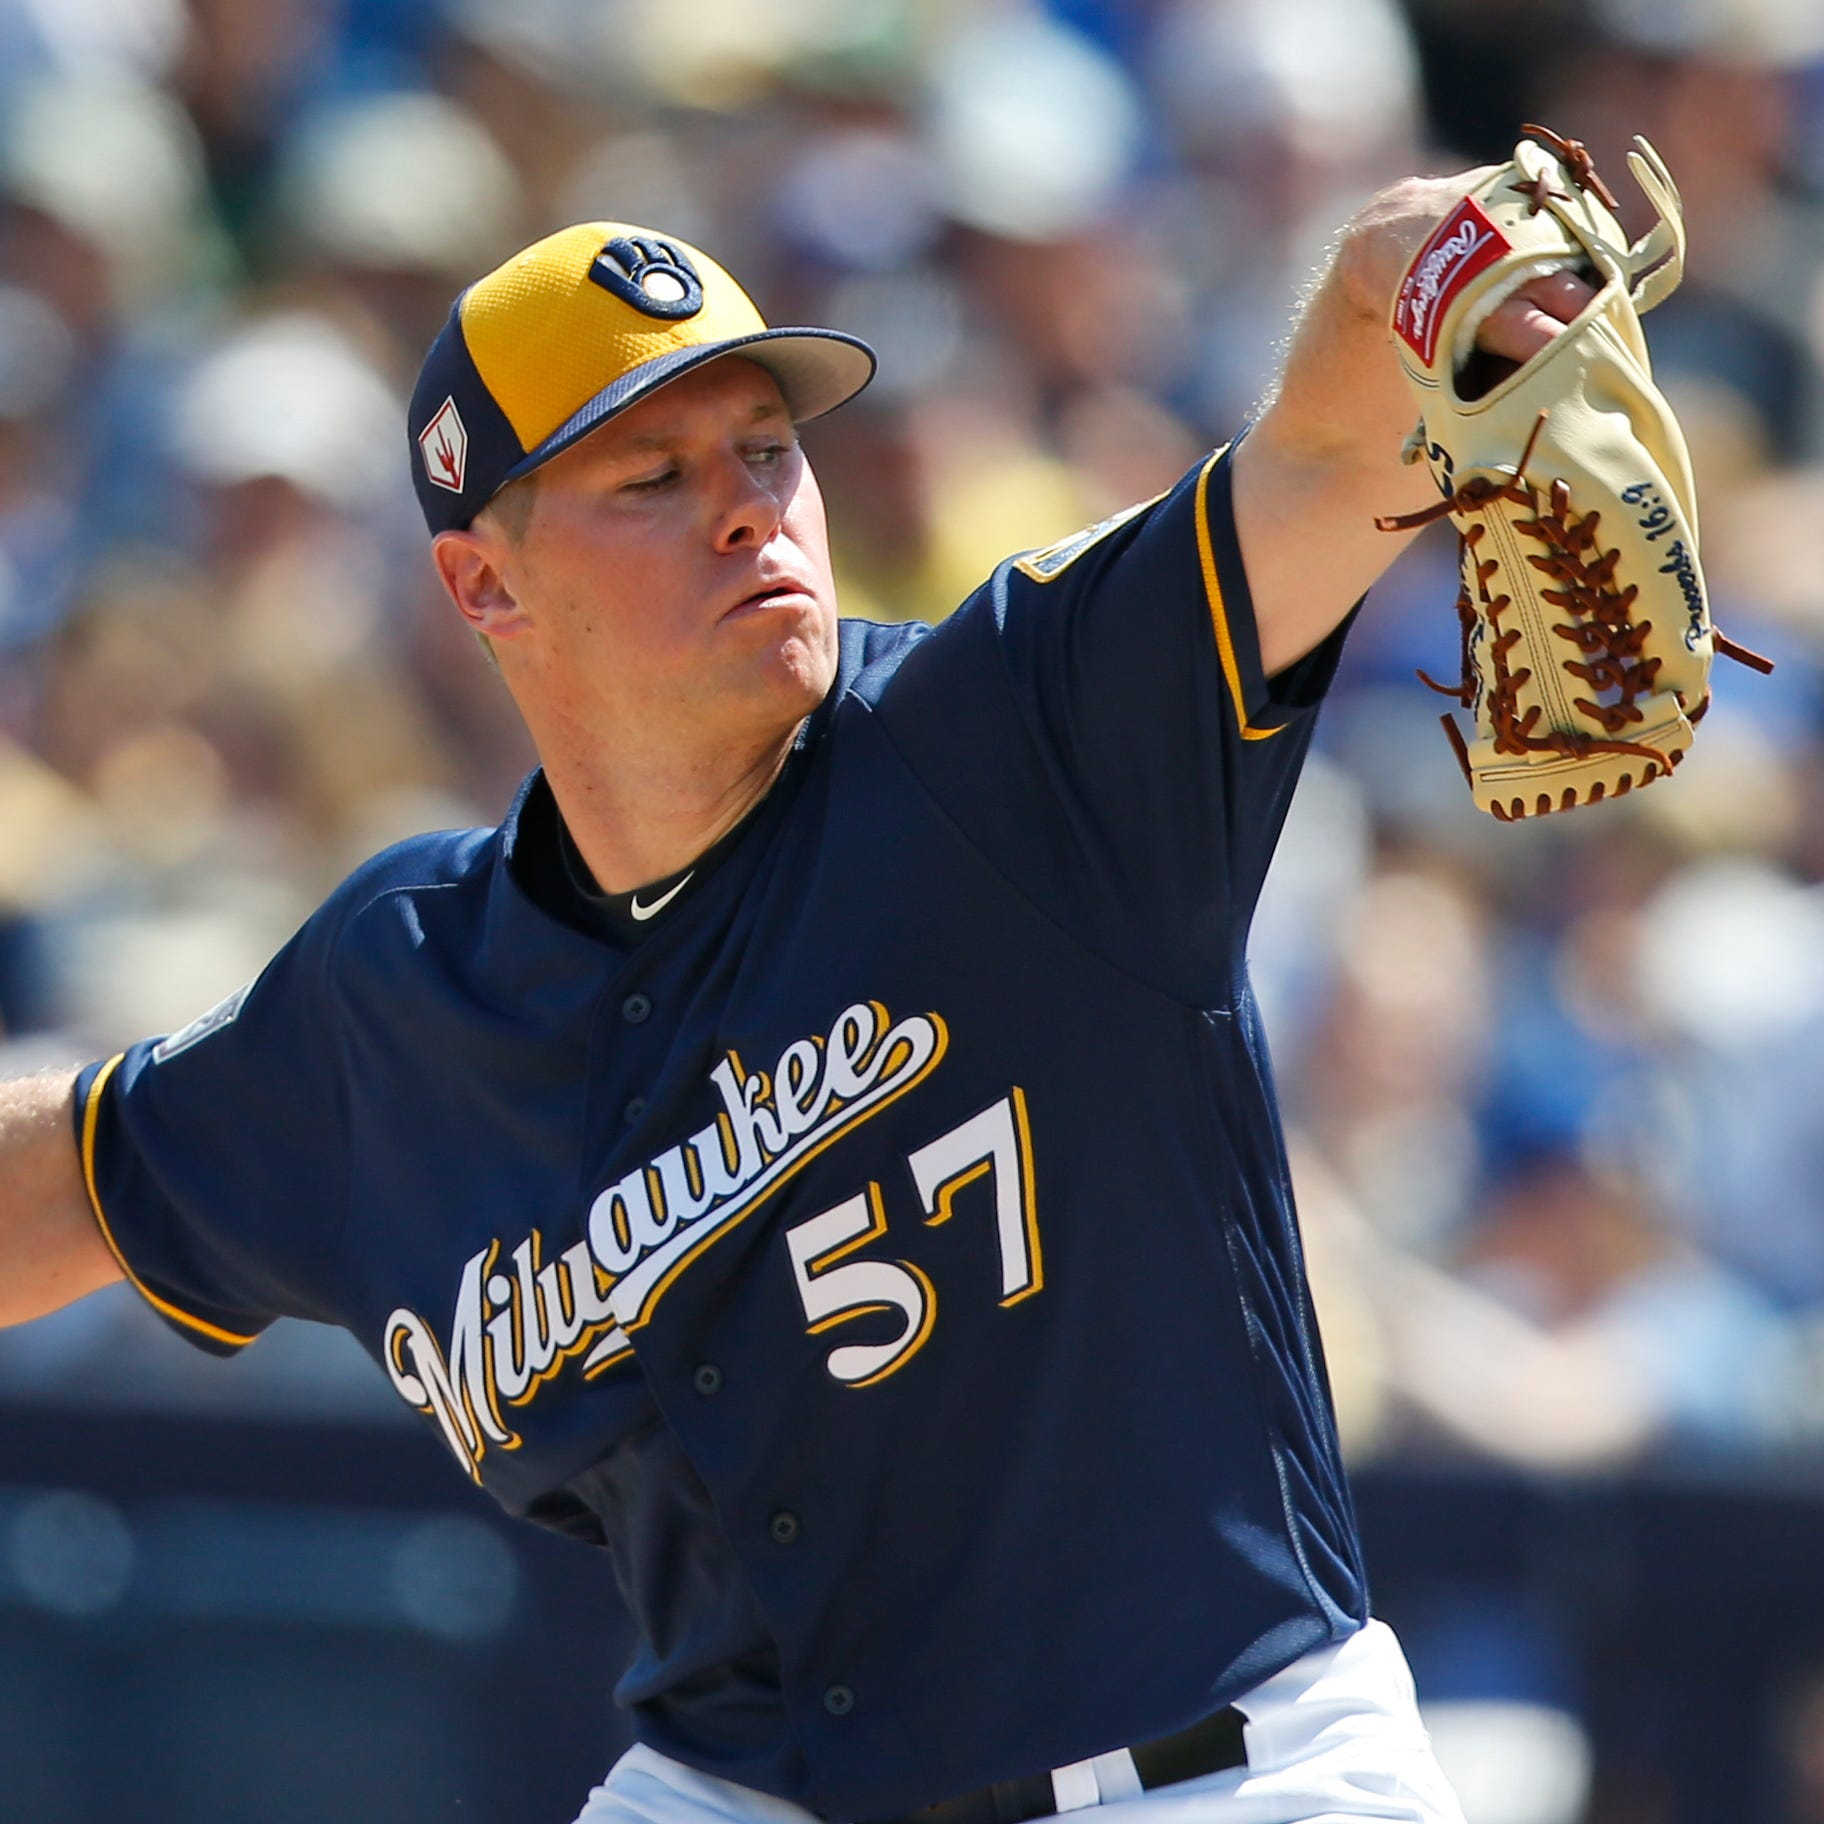 Camp report: Chase Anderson returns to old delivery and pitches well in loss to Rangers